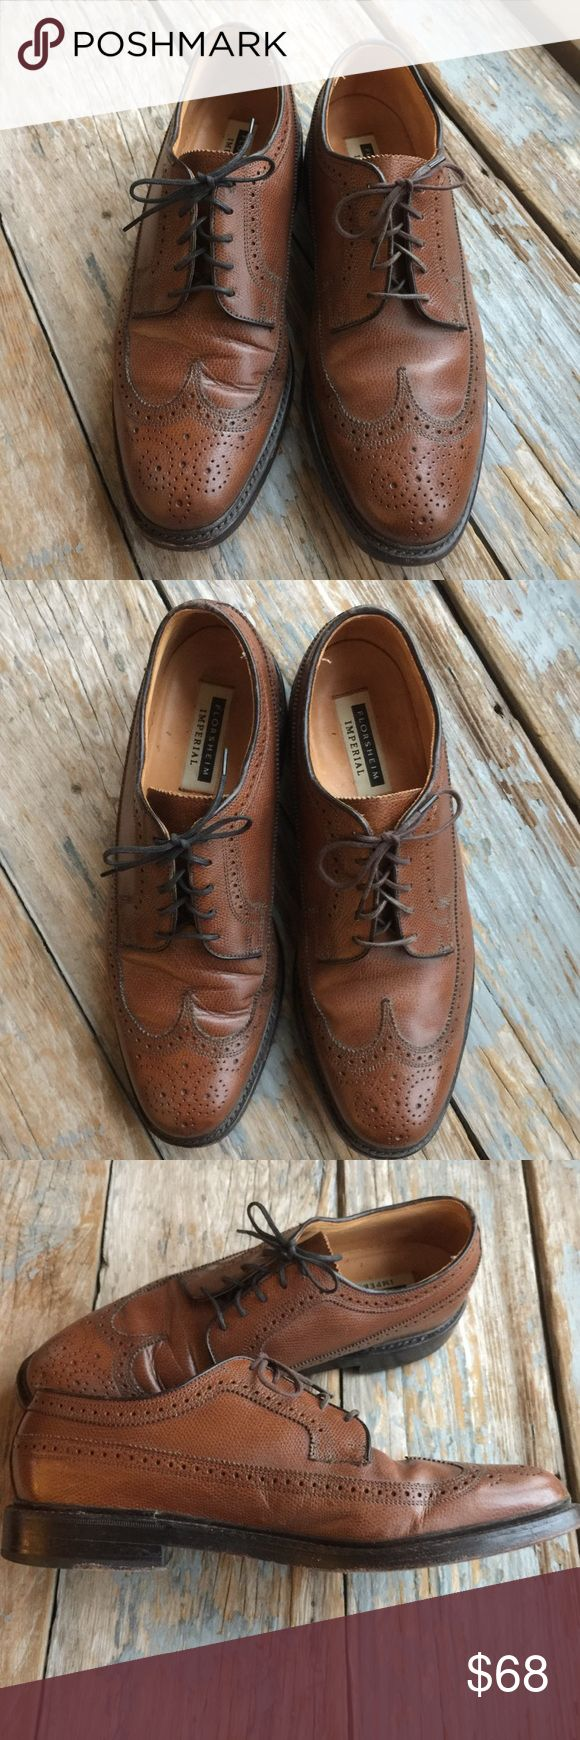 Florsheim Imperial Wingtips Classic brown wingtips. Great Florsheim quality. Good used condition. Florsheim Shoes Oxfords & Derbys